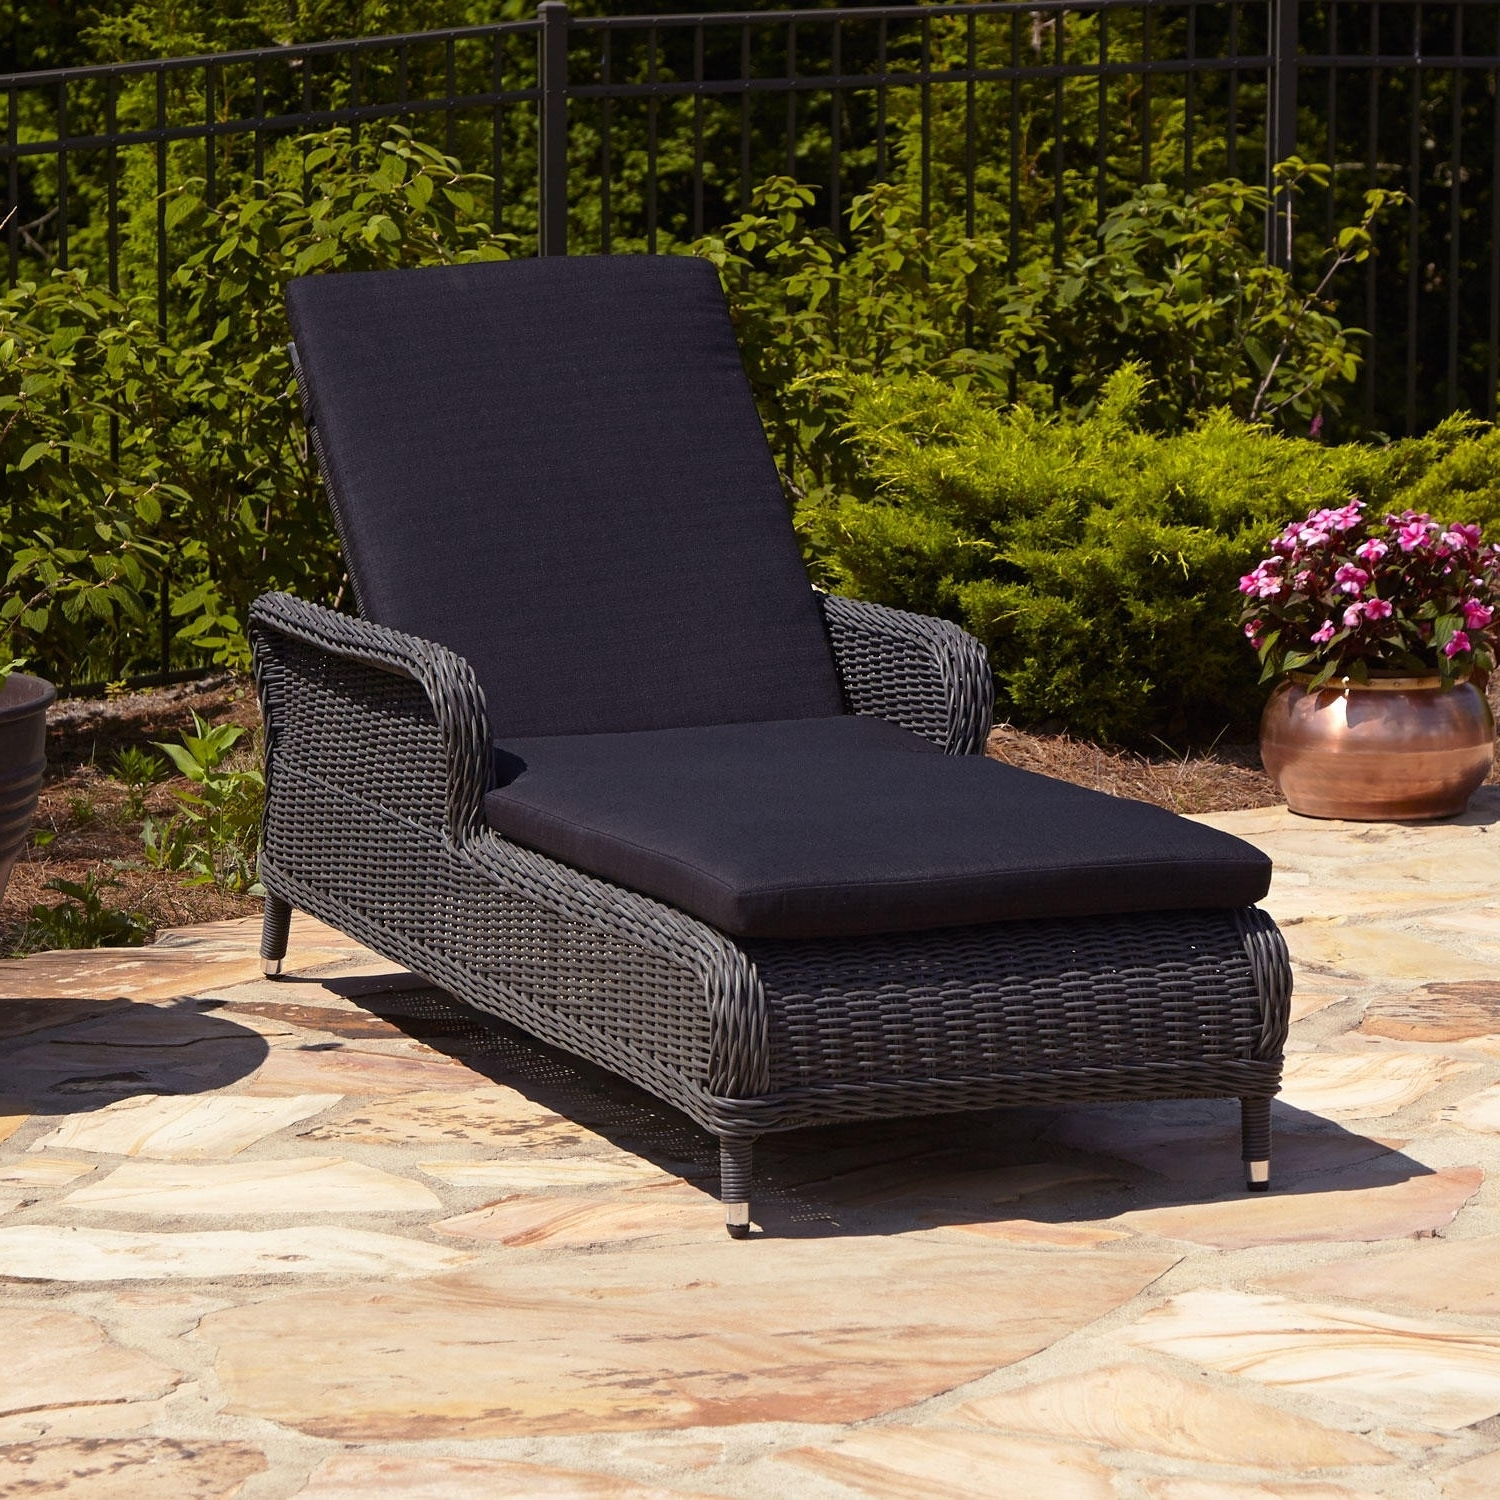 2017 Chaise Lounge Reclining Chairs For Outdoor Throughout Convertible Chair : Pool Deck Lounge Chairs Outdoor Tanning Chair (View 8 of 15)